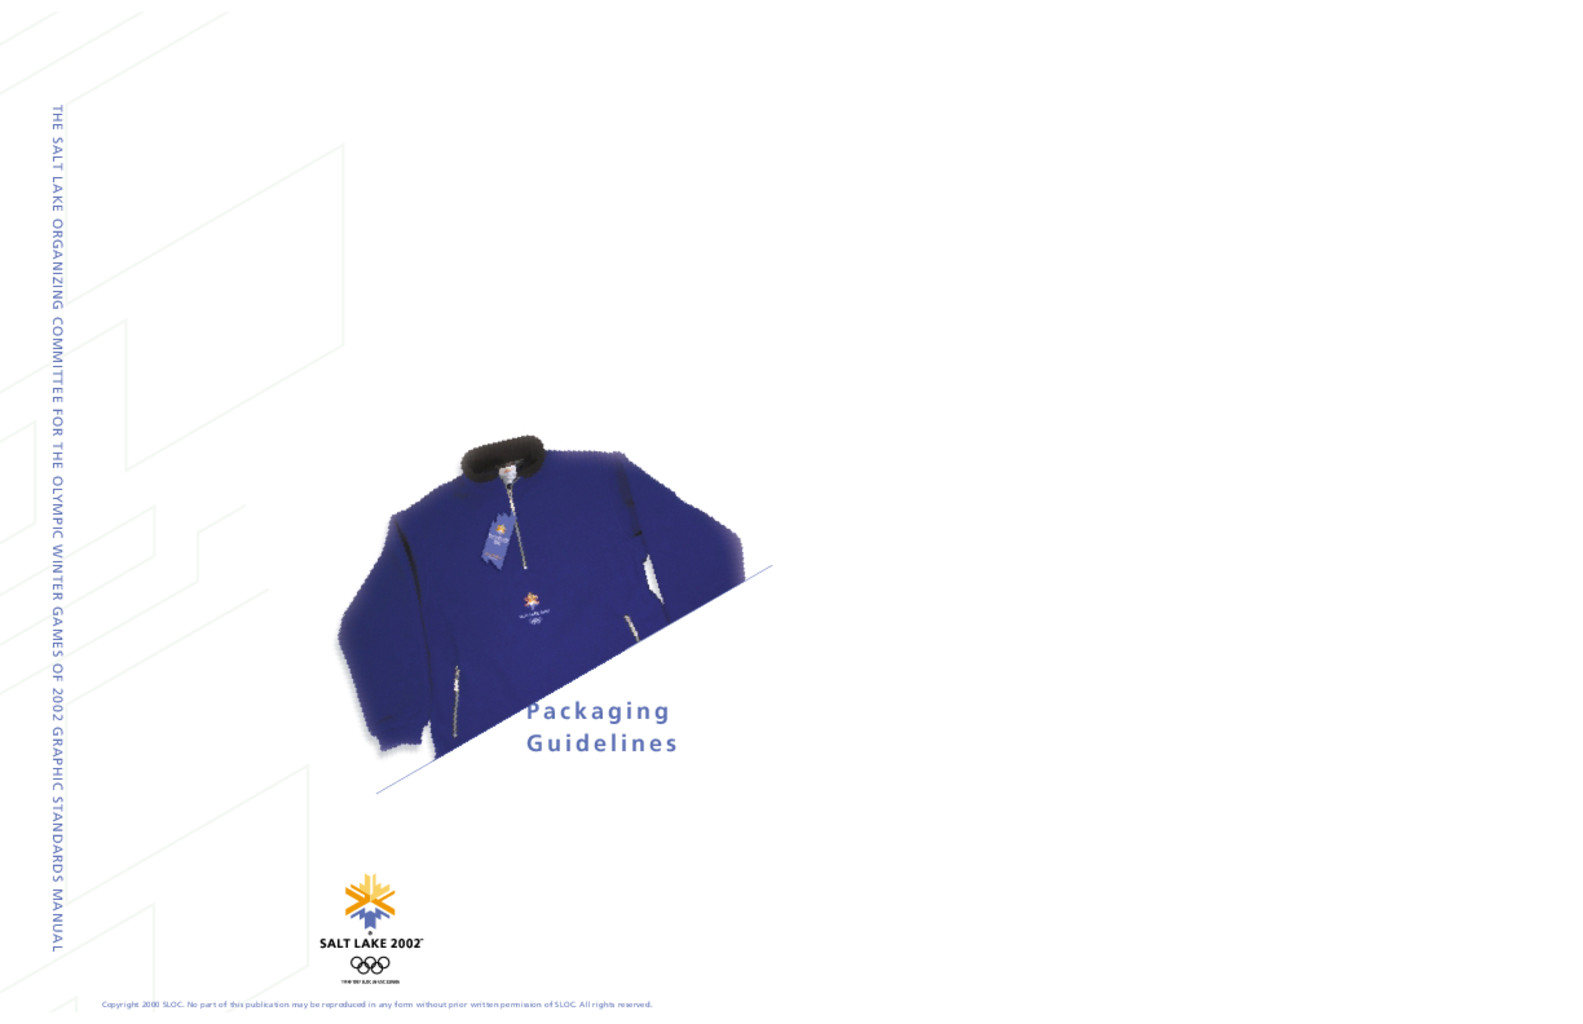 Packaging guidelines : Salt Lake 2002 / Salt Lake Organizing Committee for the Olympic Winter Games of 2002   Olympic Winter Games. Organizing Committee. 19, 2002, Salt Lake City